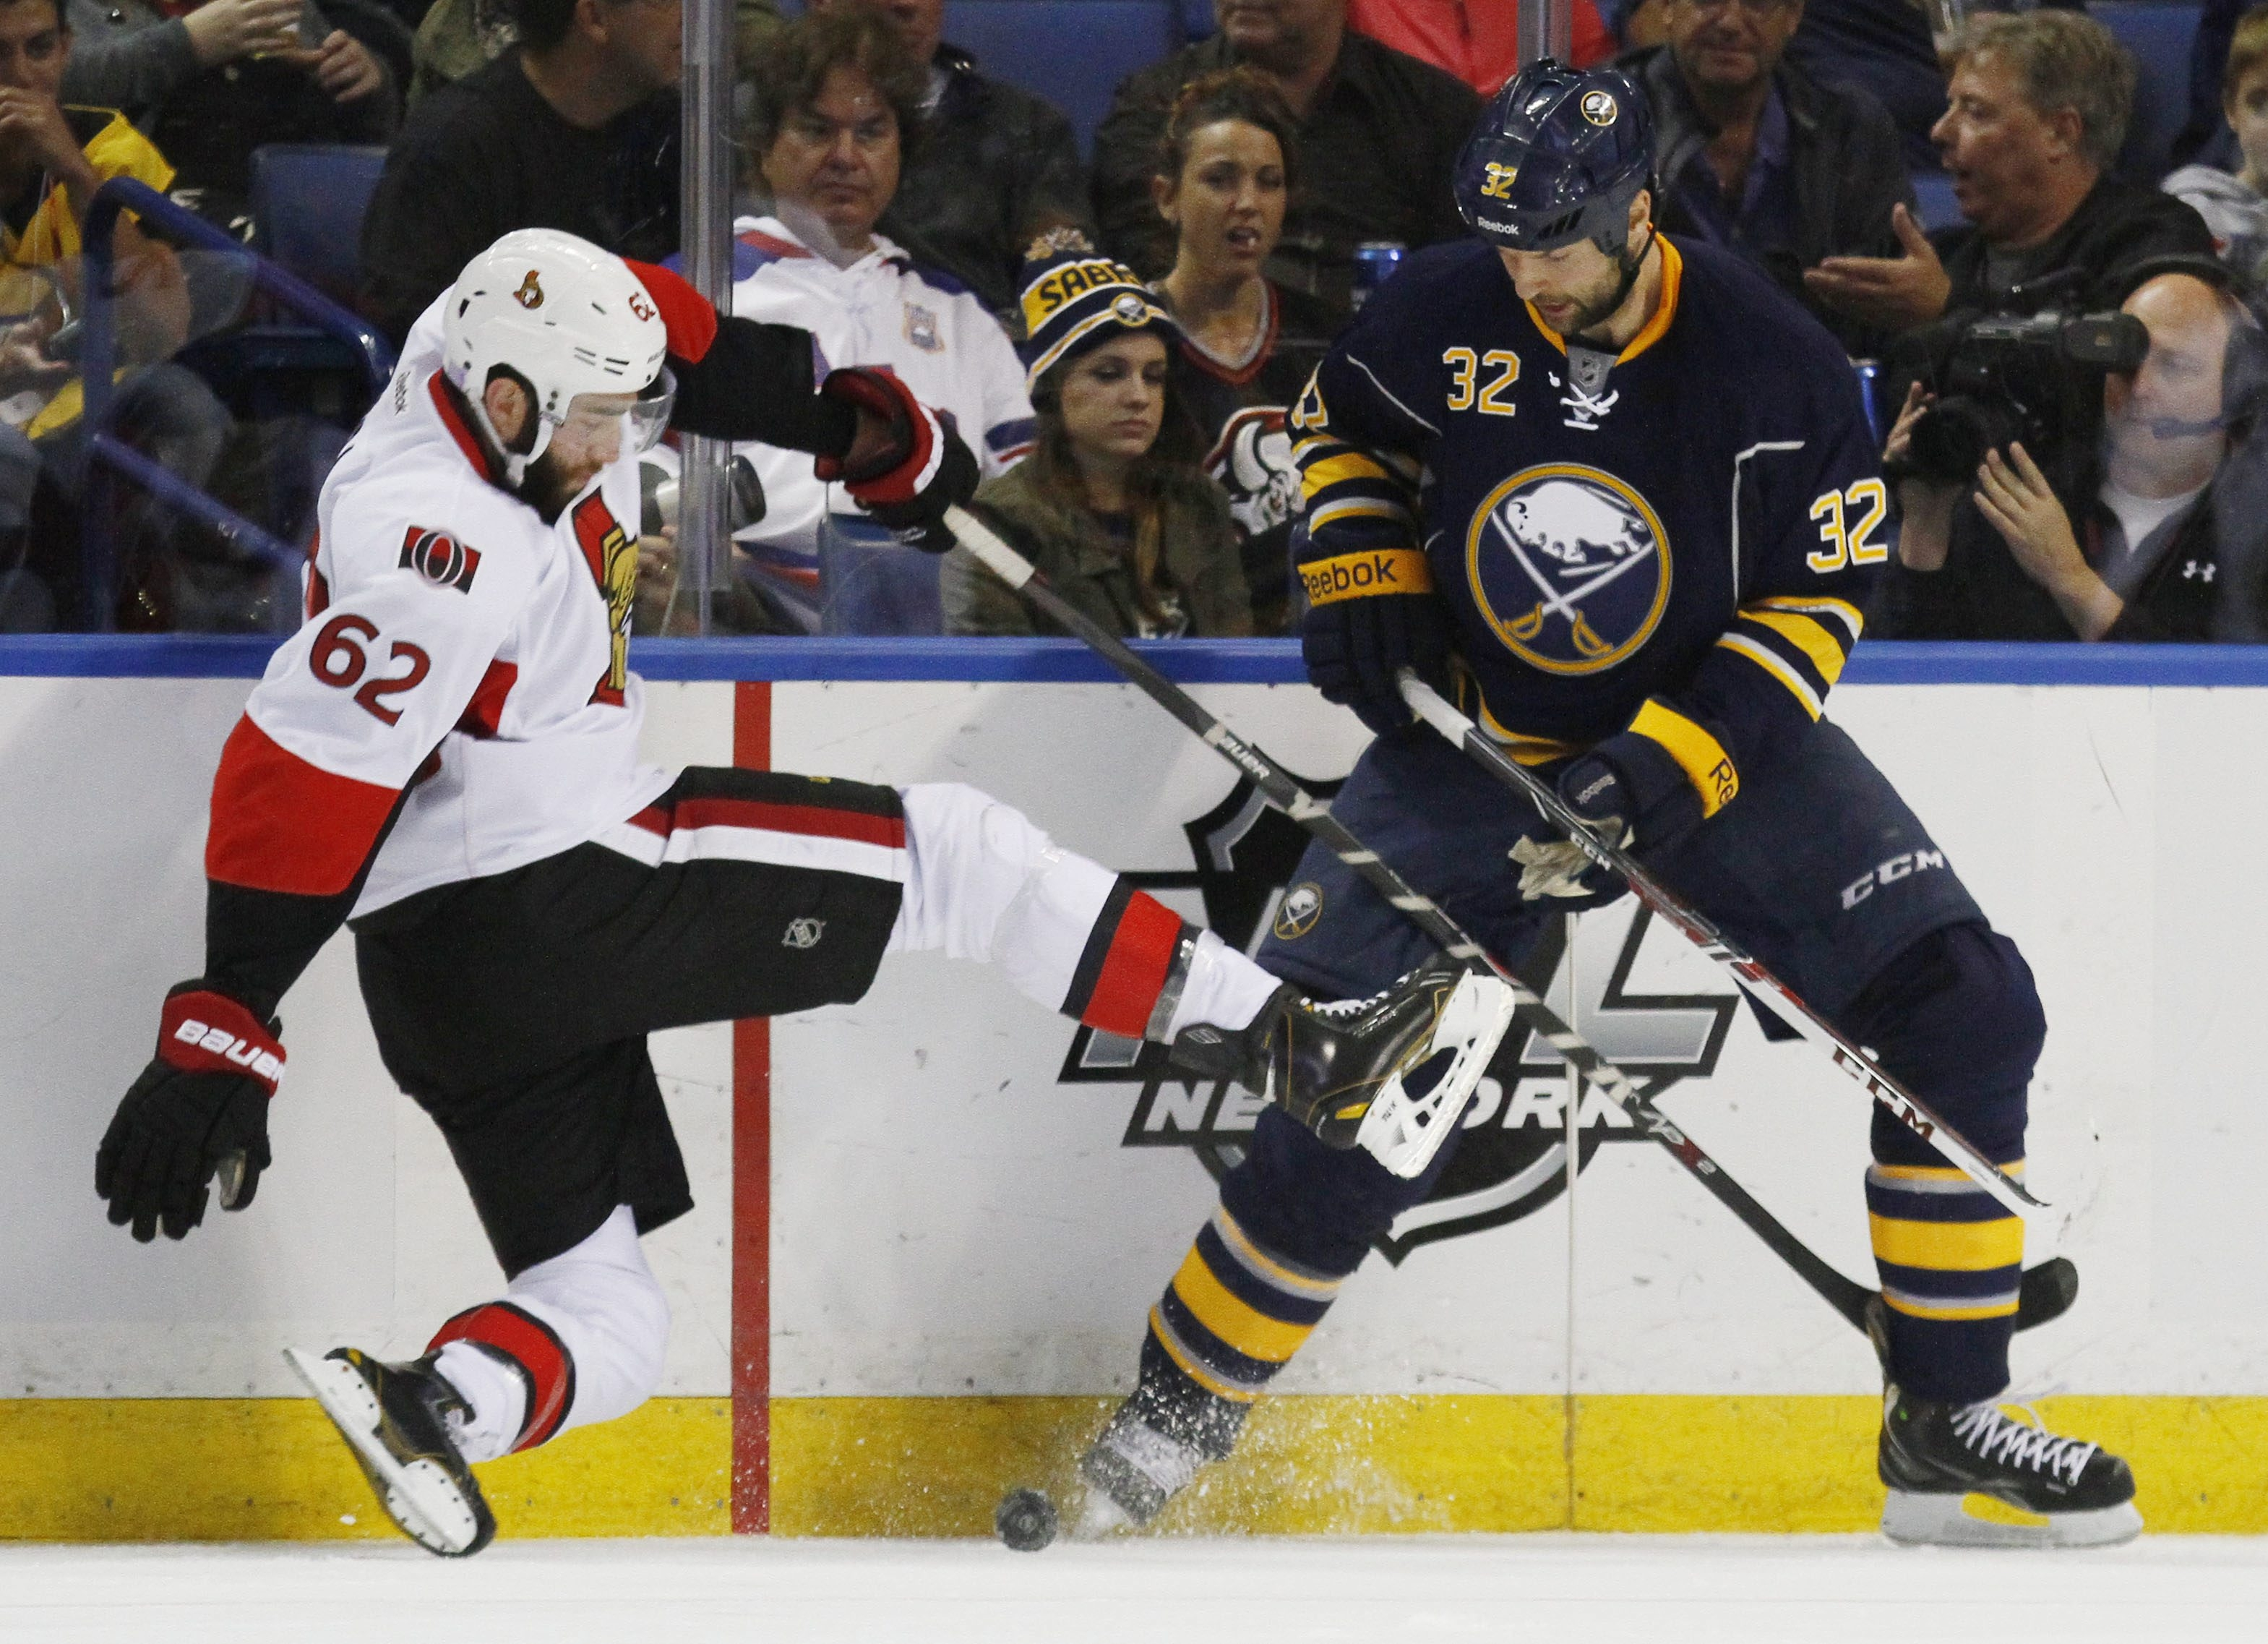 Sabres' John Scott, here checking Ottawa's Eric Gryba, has seen his play come under increased scrutiny in recent days.